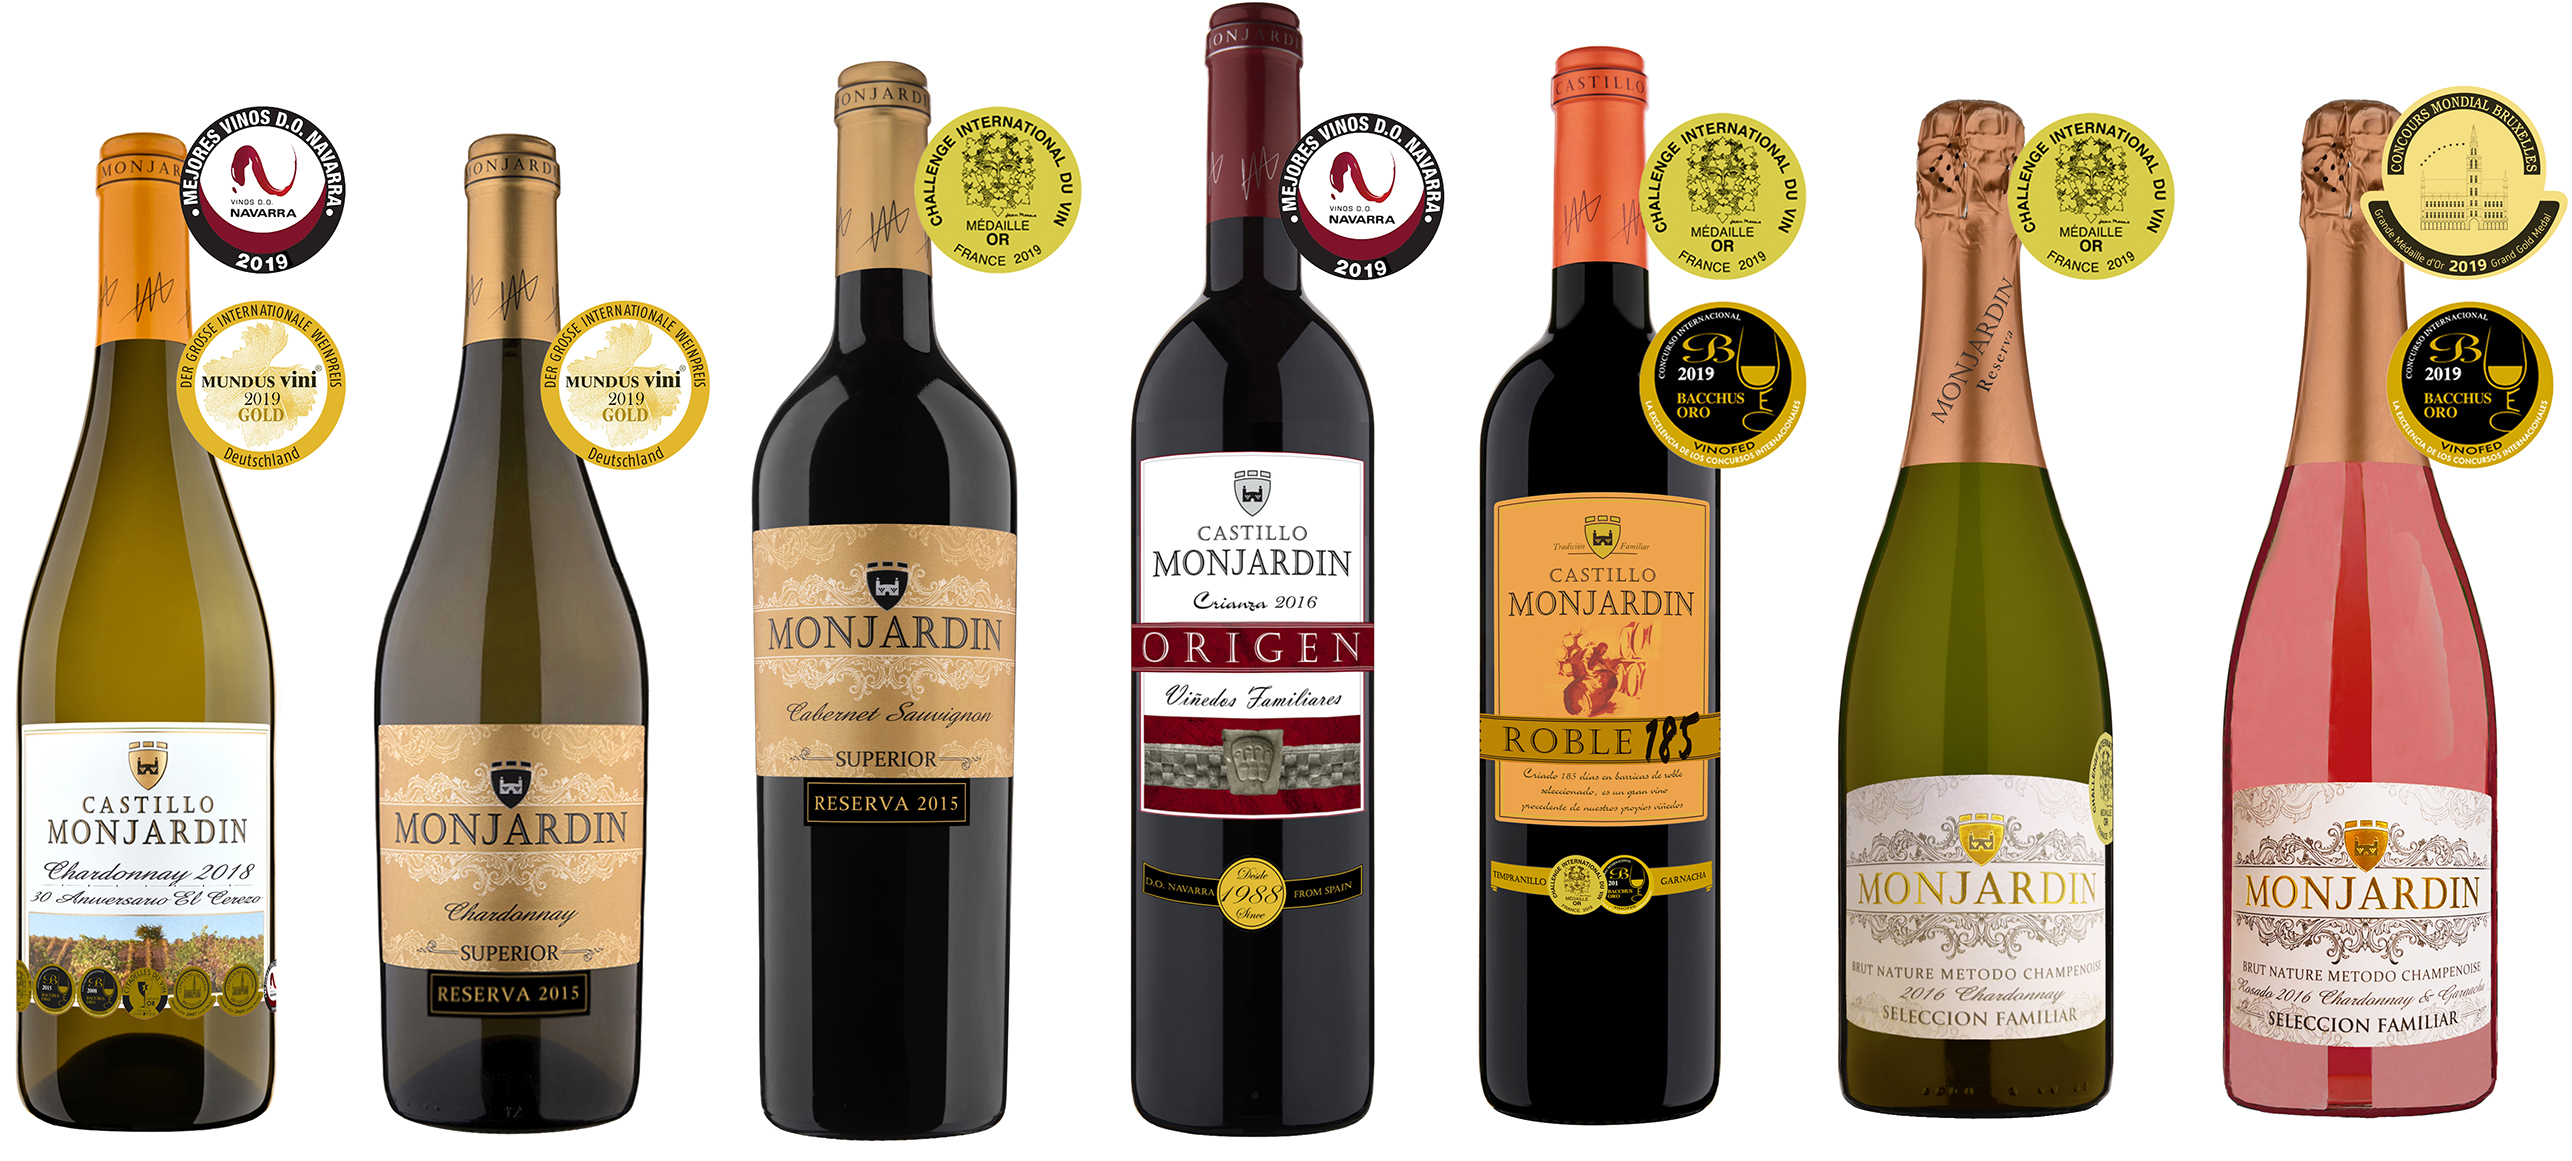 awards gold medals 2019 castillo monjardin